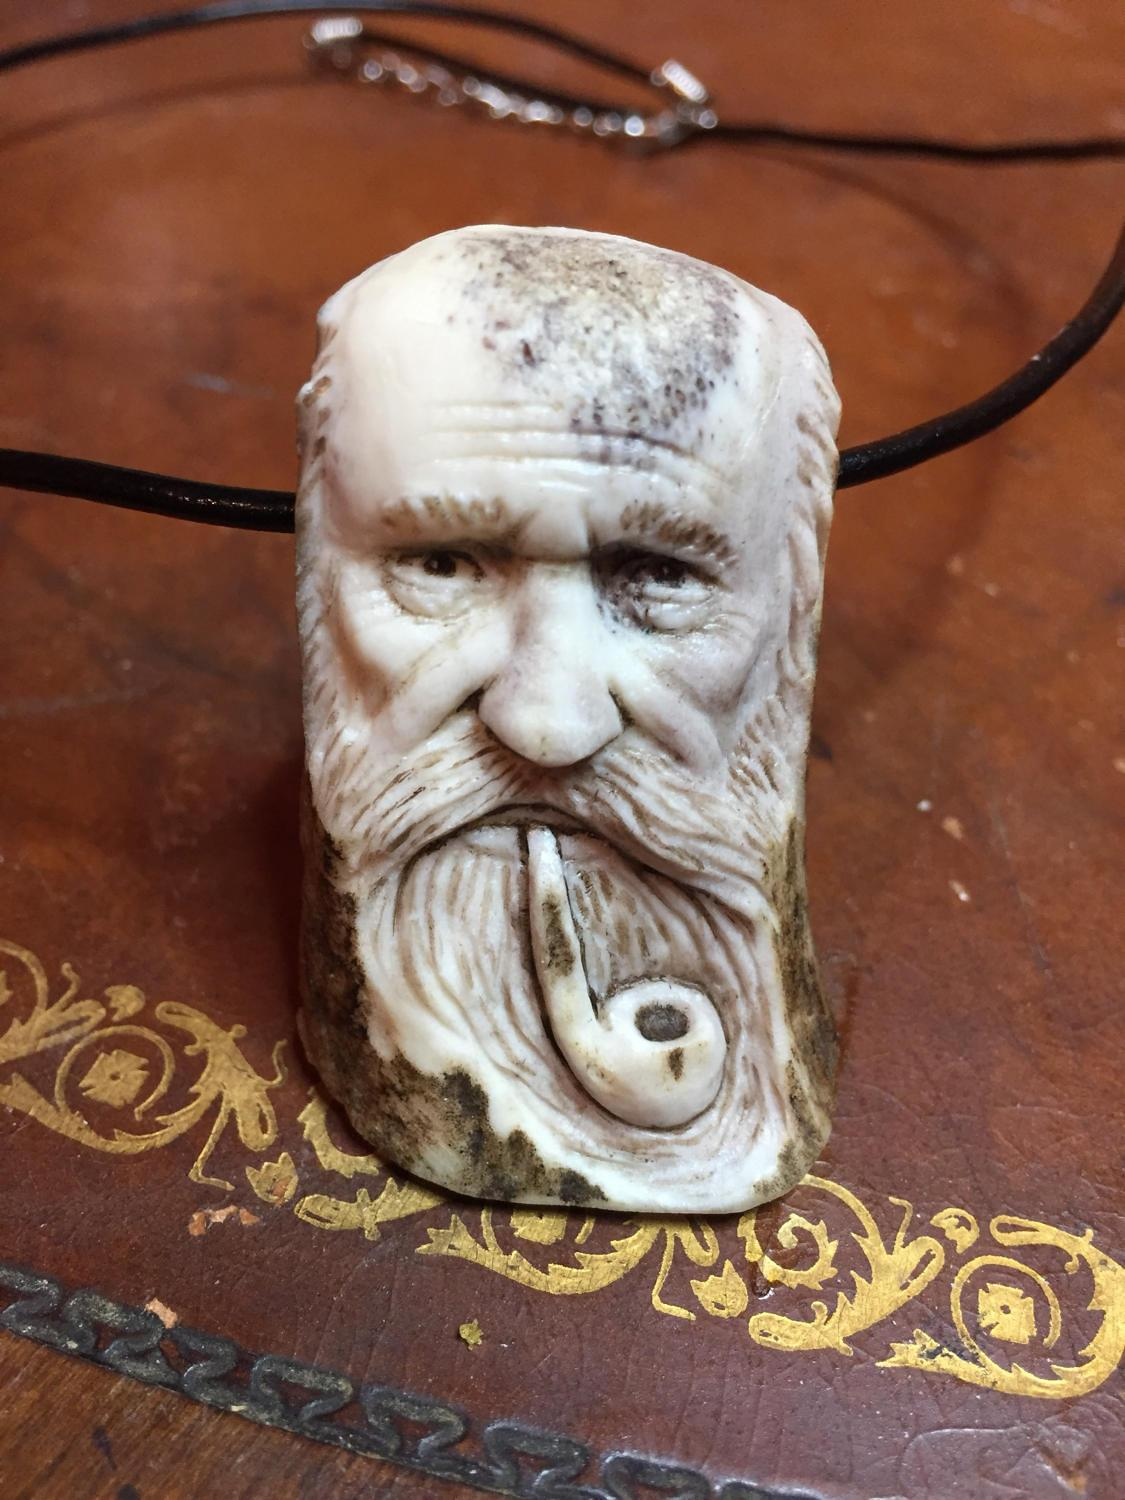 Bone Necklace Antler Pendant Hand Carved Art Pipe Smoker Old Man Perfect Gift Beard Unique Sculpture By Josh Carte Spirit Jewelry